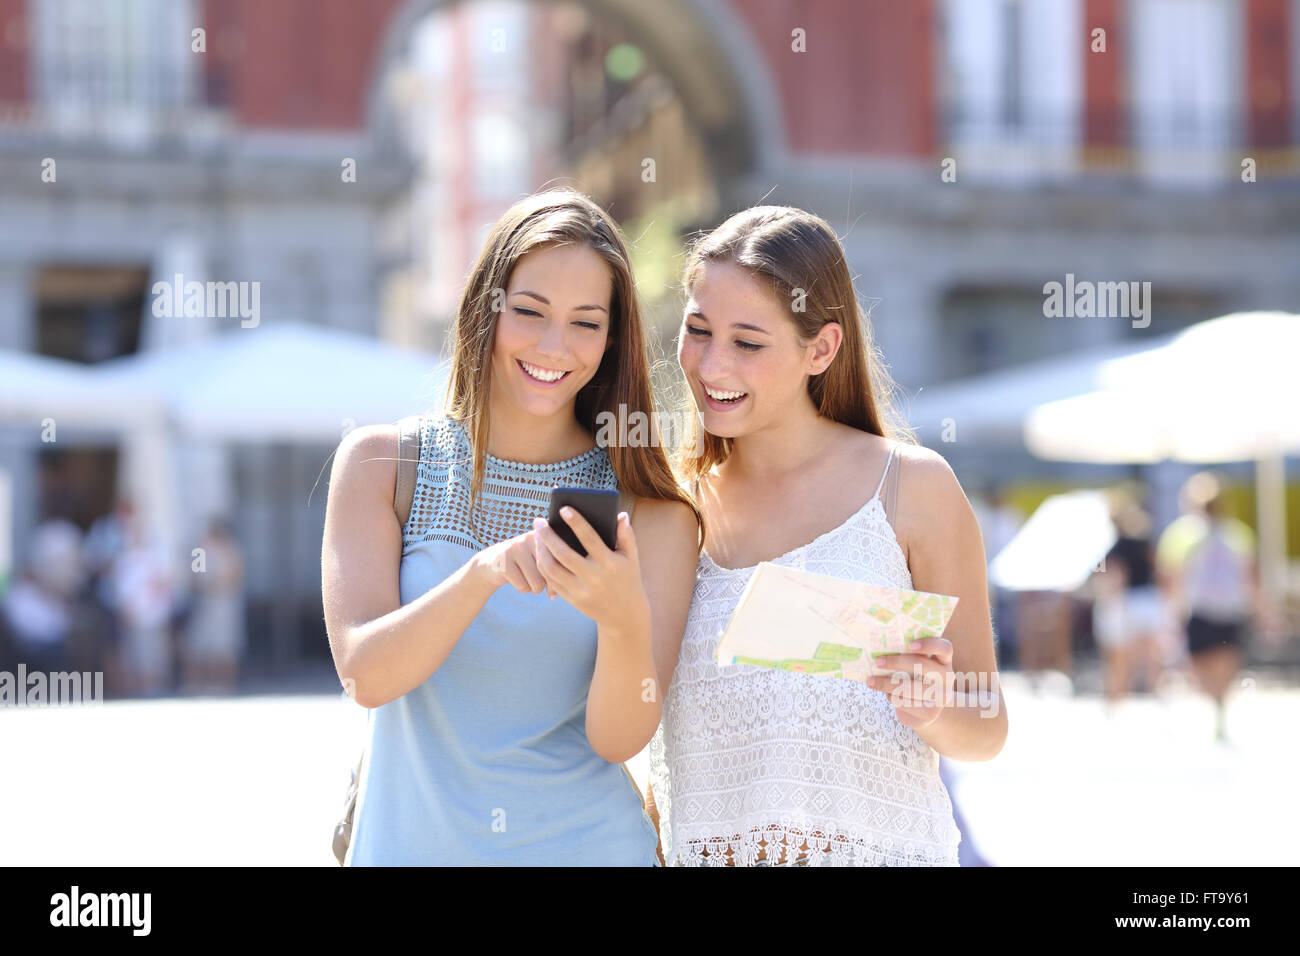 Two tourist friends consulting an online guide on a smart phone in the street - Stock Image